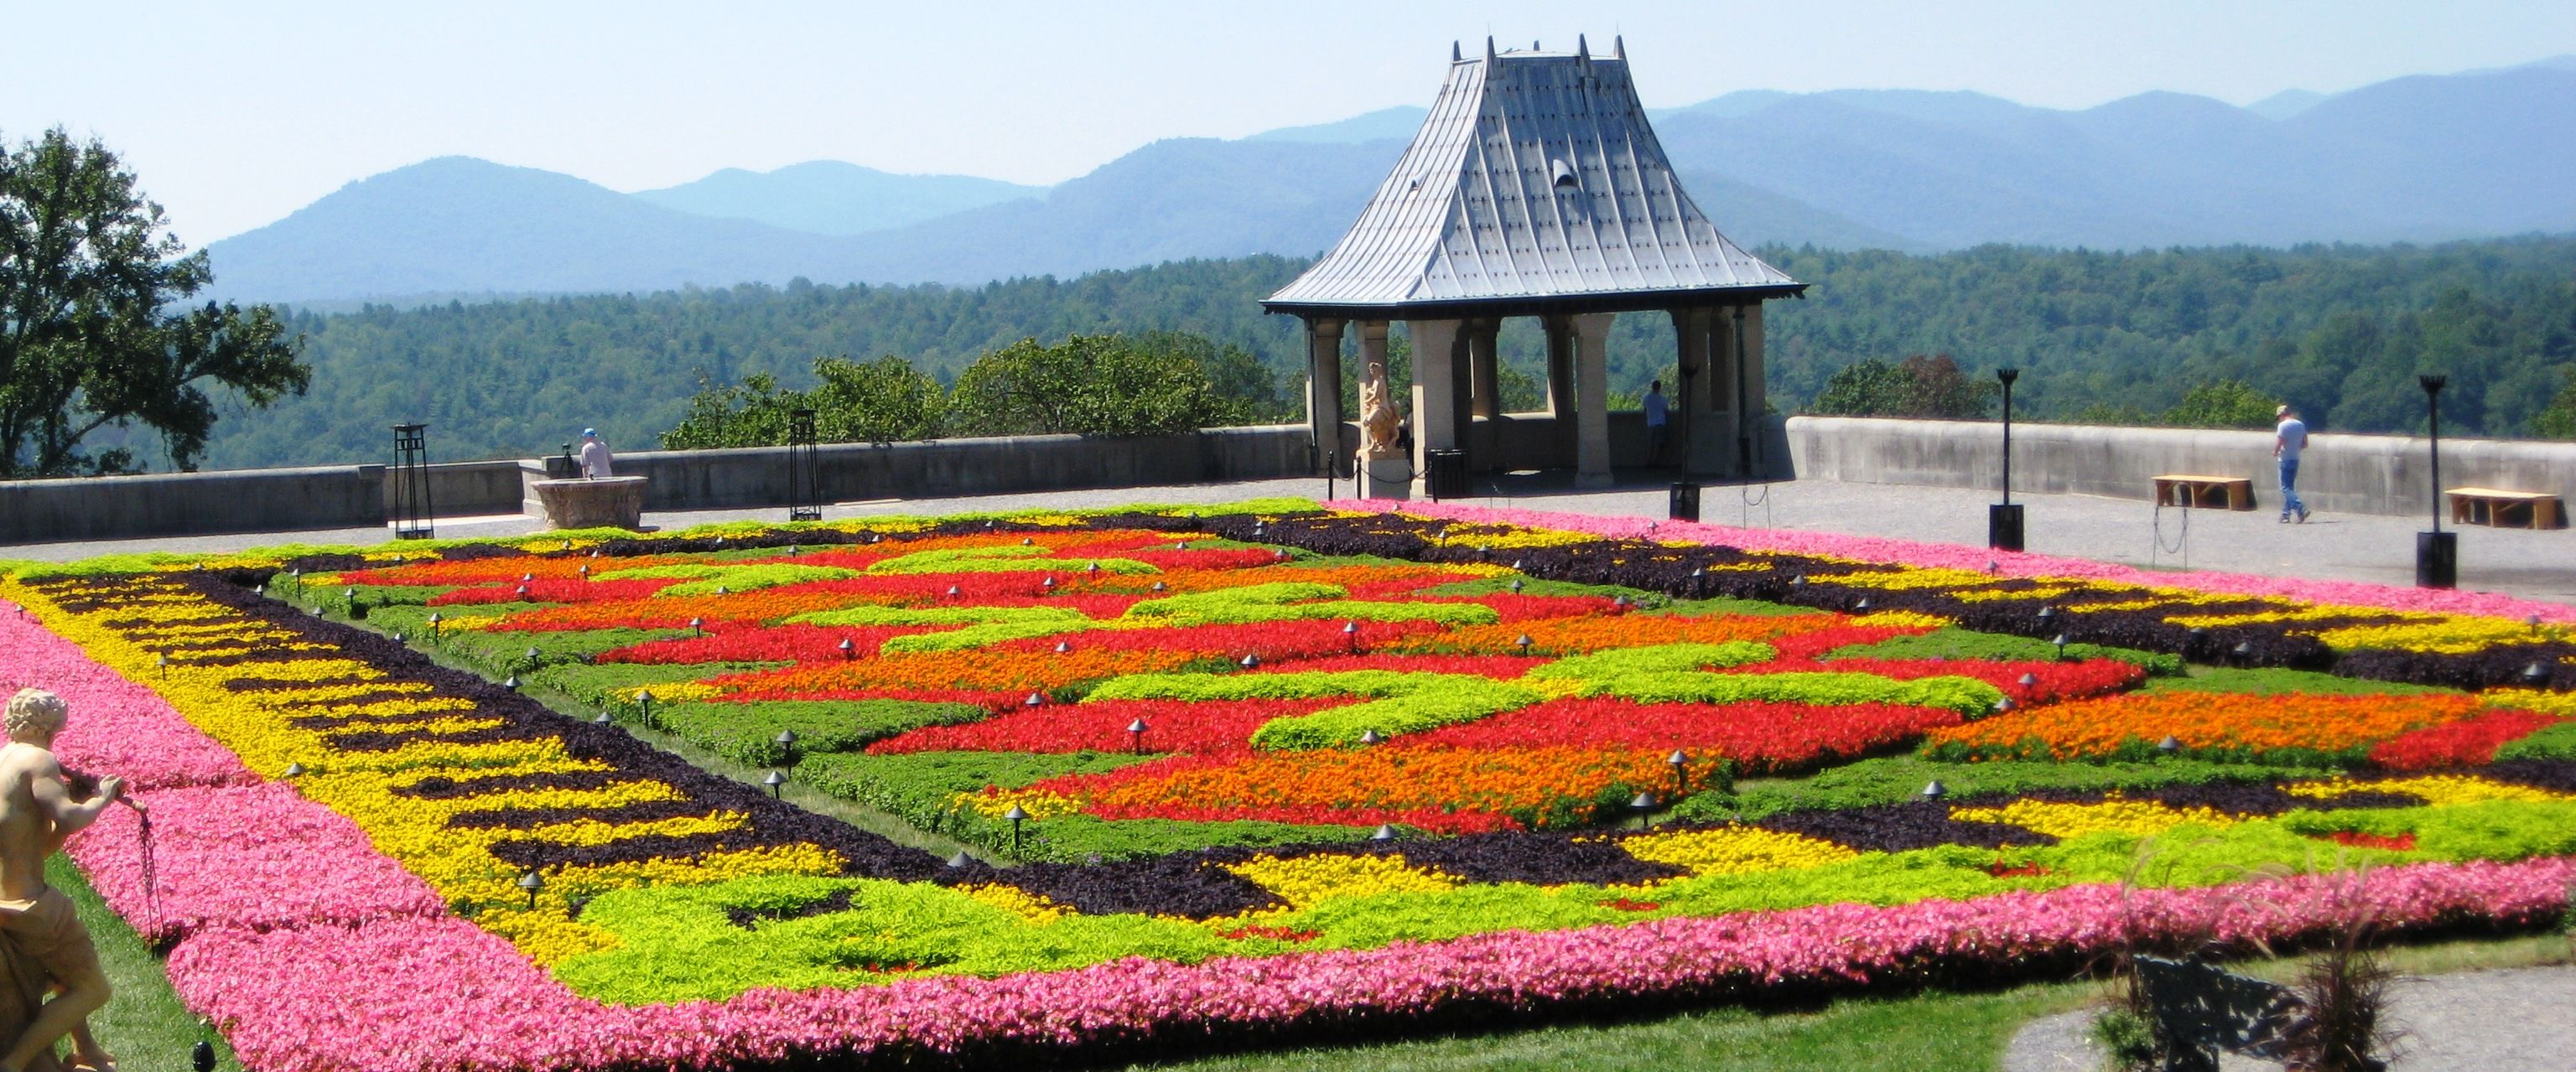 607f9dfd541e1fdaac78649d63446507 - Can You Visit Biltmore Gardens For Free